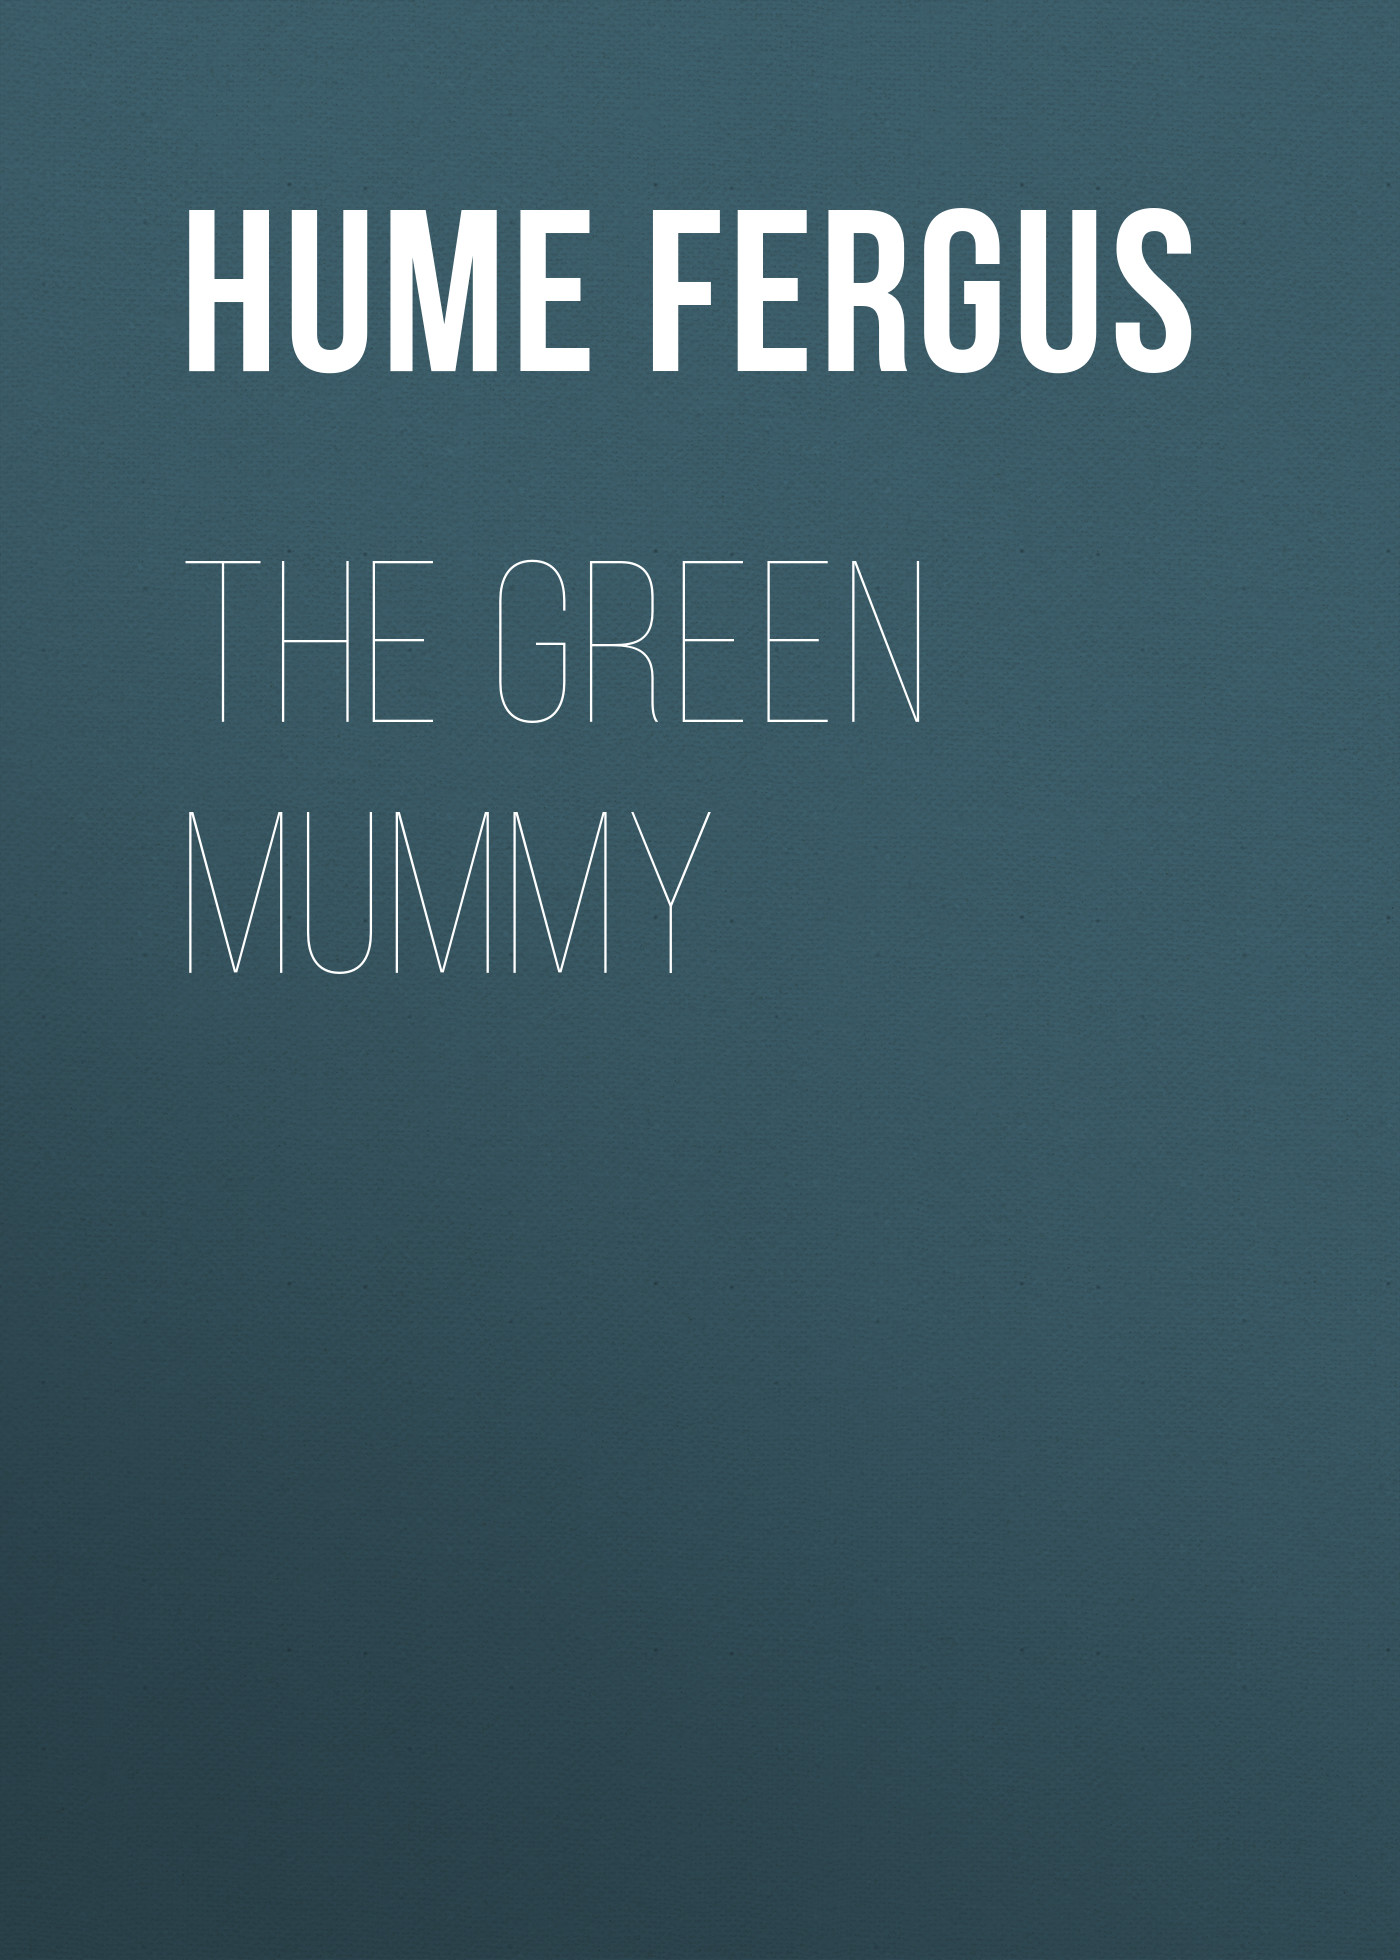 все цены на Hume Fergus The Green Mummy